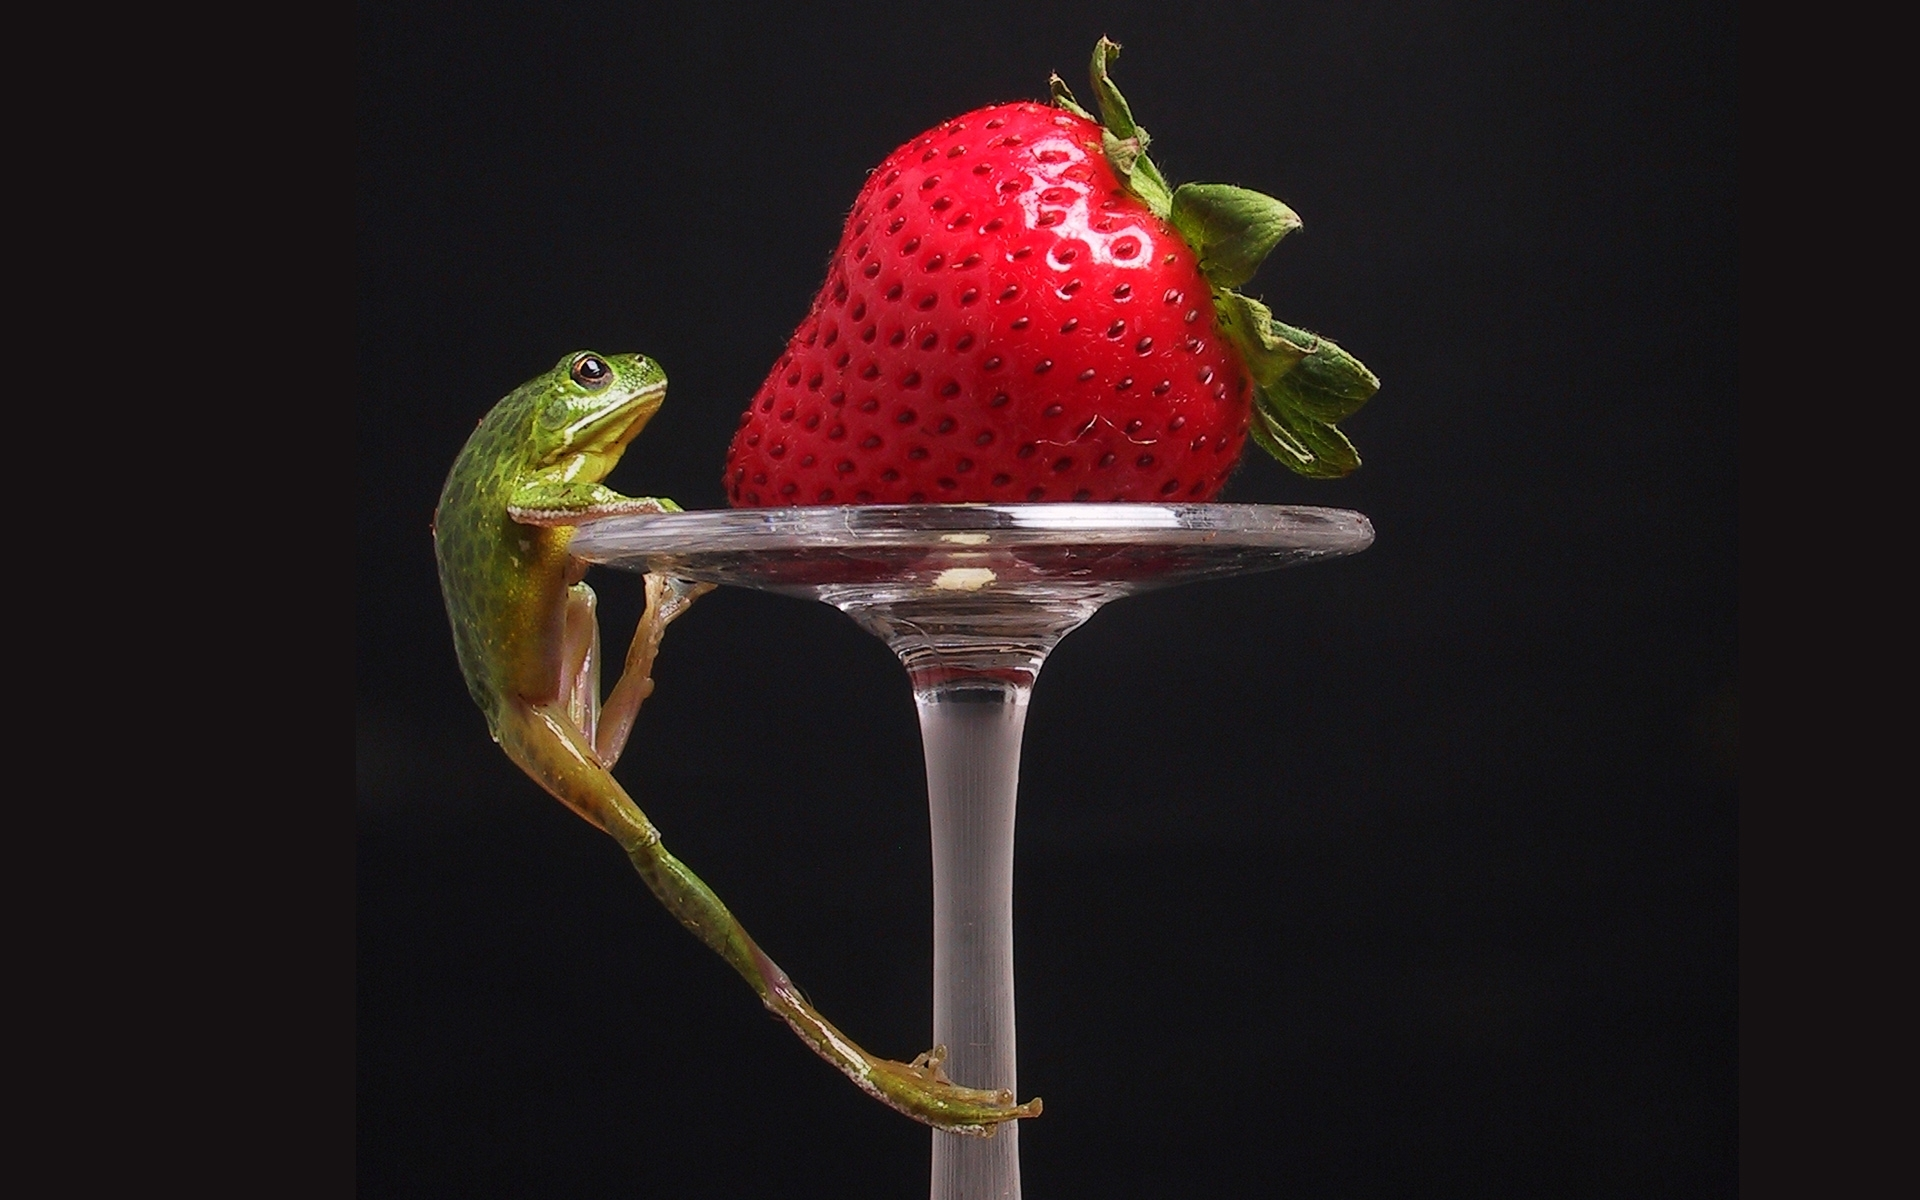 2504 download wallpaper Animals, Fruits, Food, Strawberry, Frogs, Berries screensavers and pictures for free